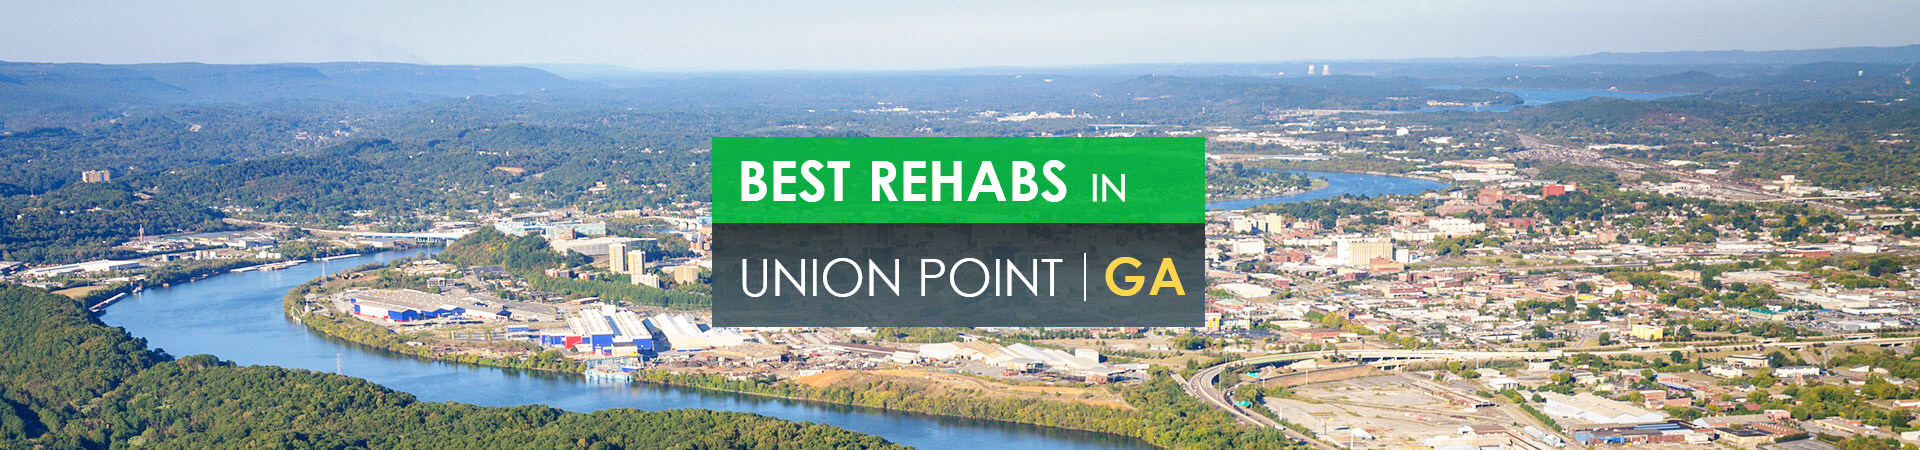 Best rehabs in Union Point, GA